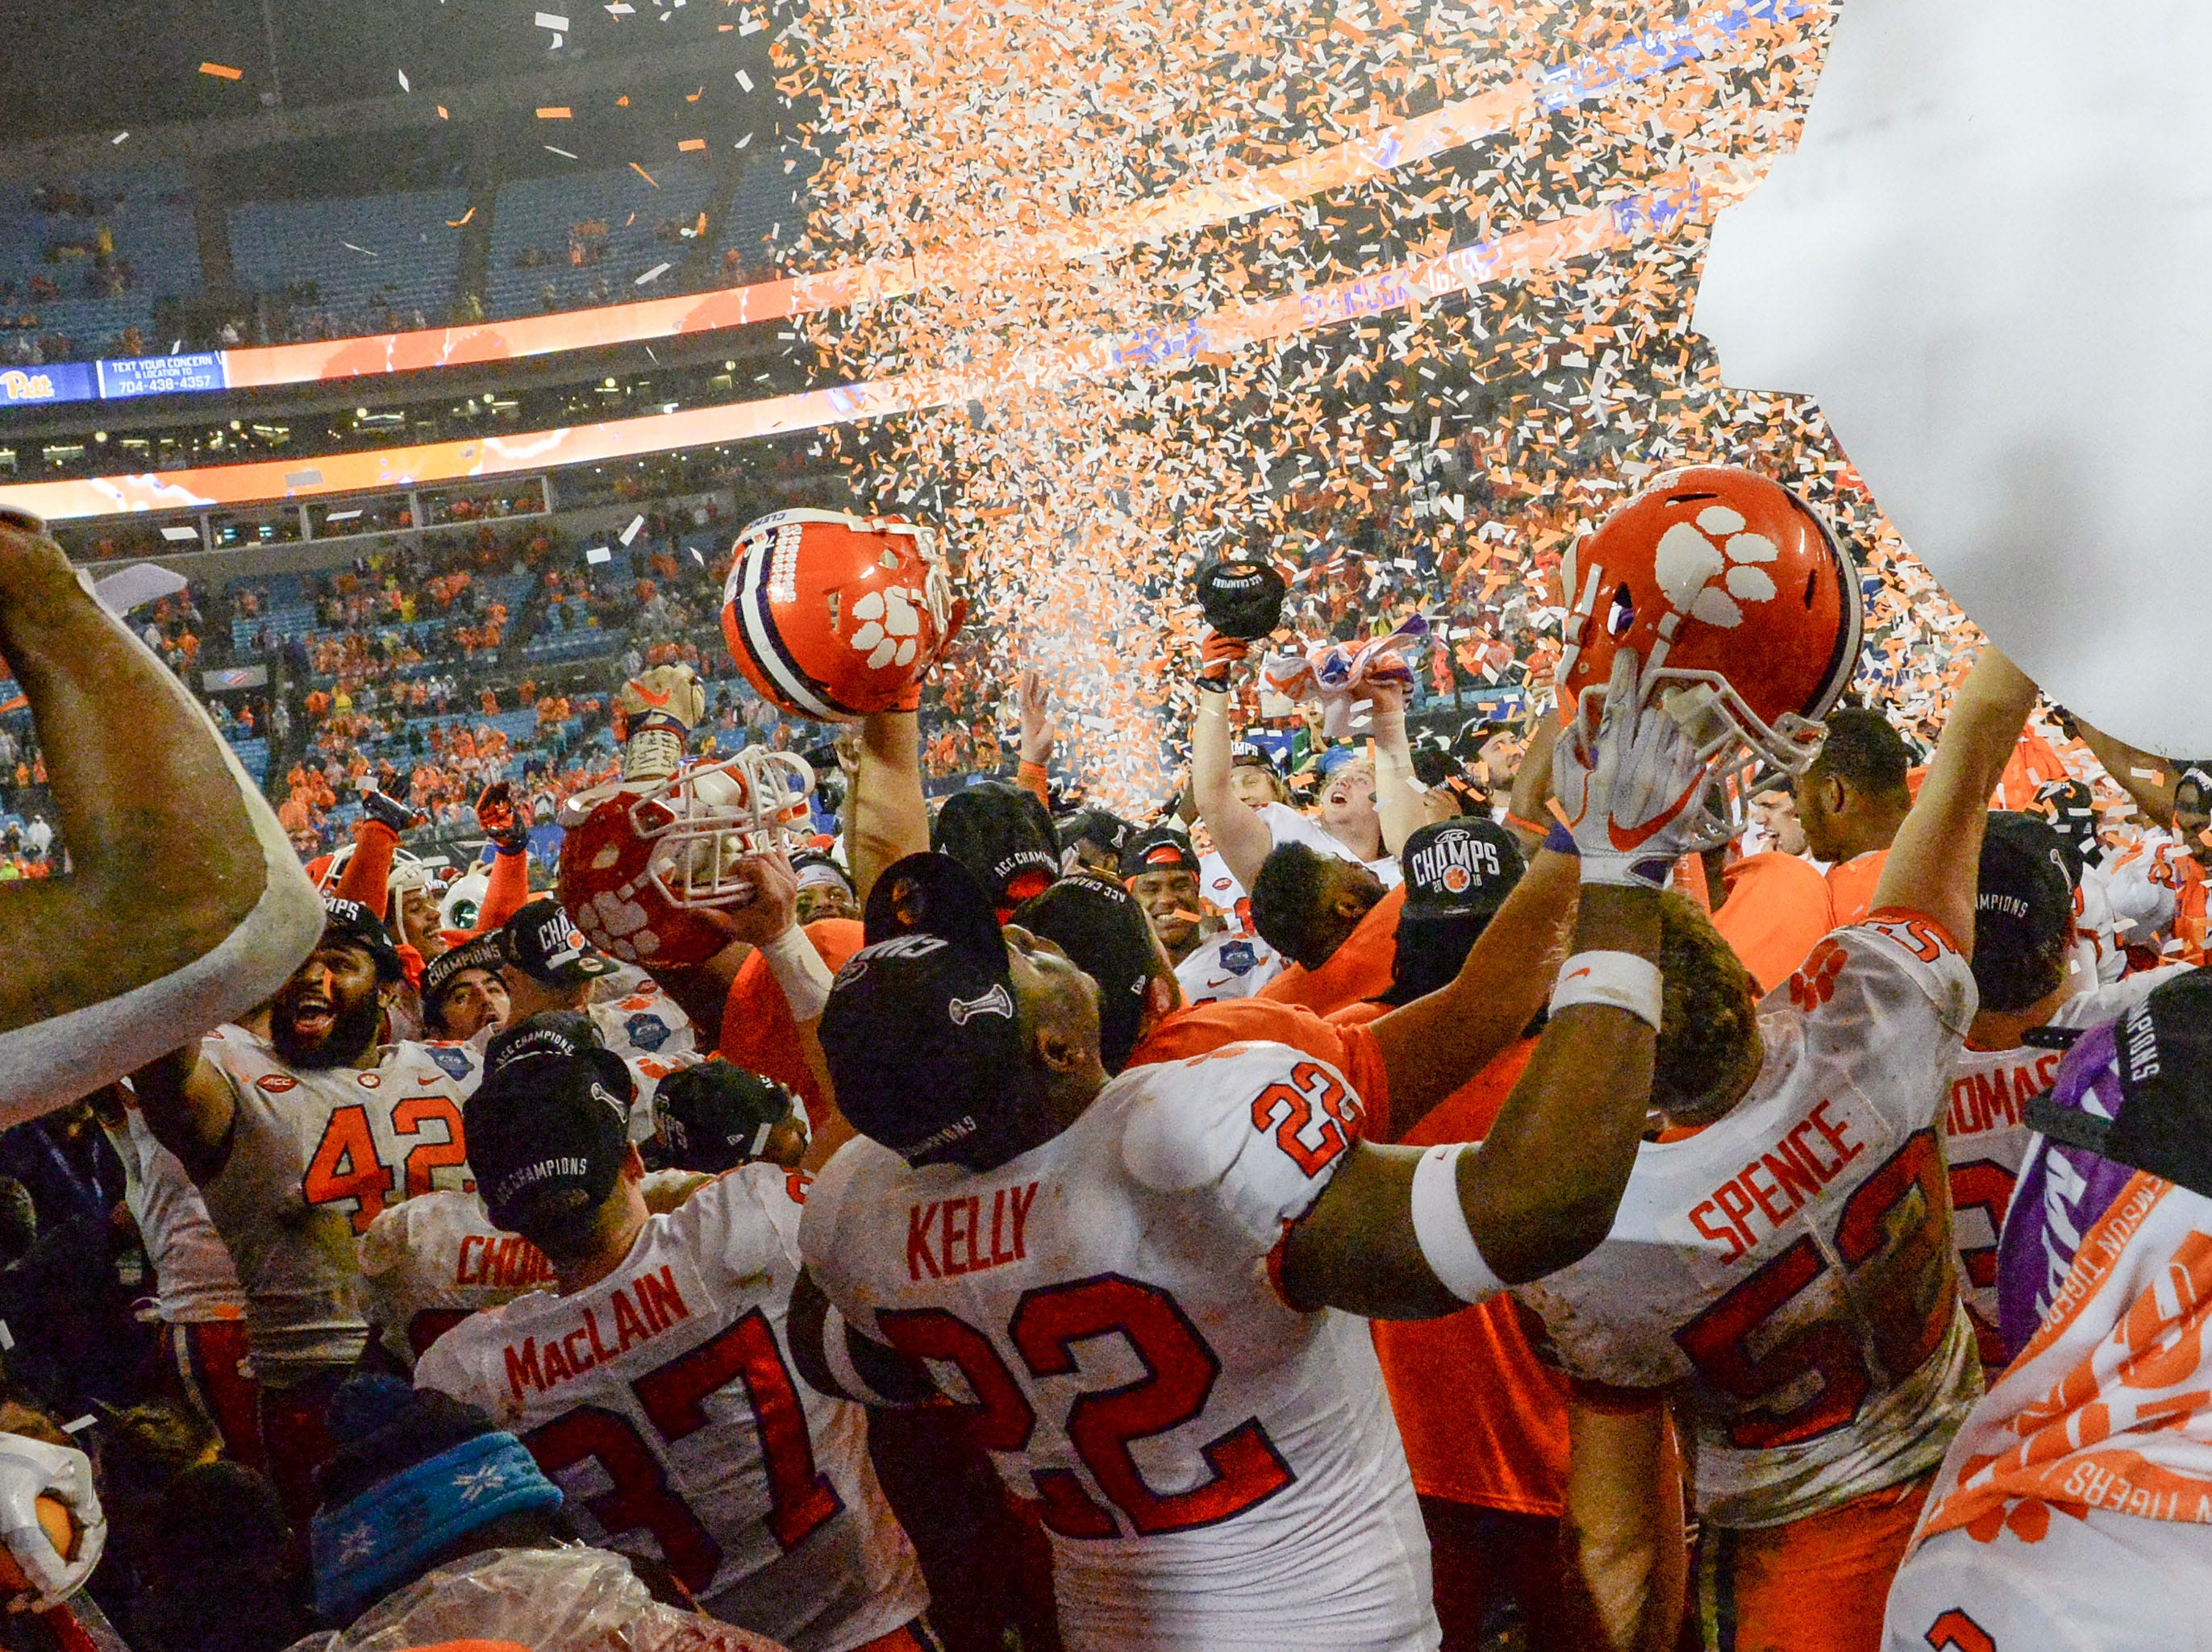 Clemson team and fans celebrate a 42-10 win over Pittsburgh after the game at the Dr. Pepper ACC football championship at Bank of America Stadium in Charlotte, N.C. on Saturday, December 1, 2018.